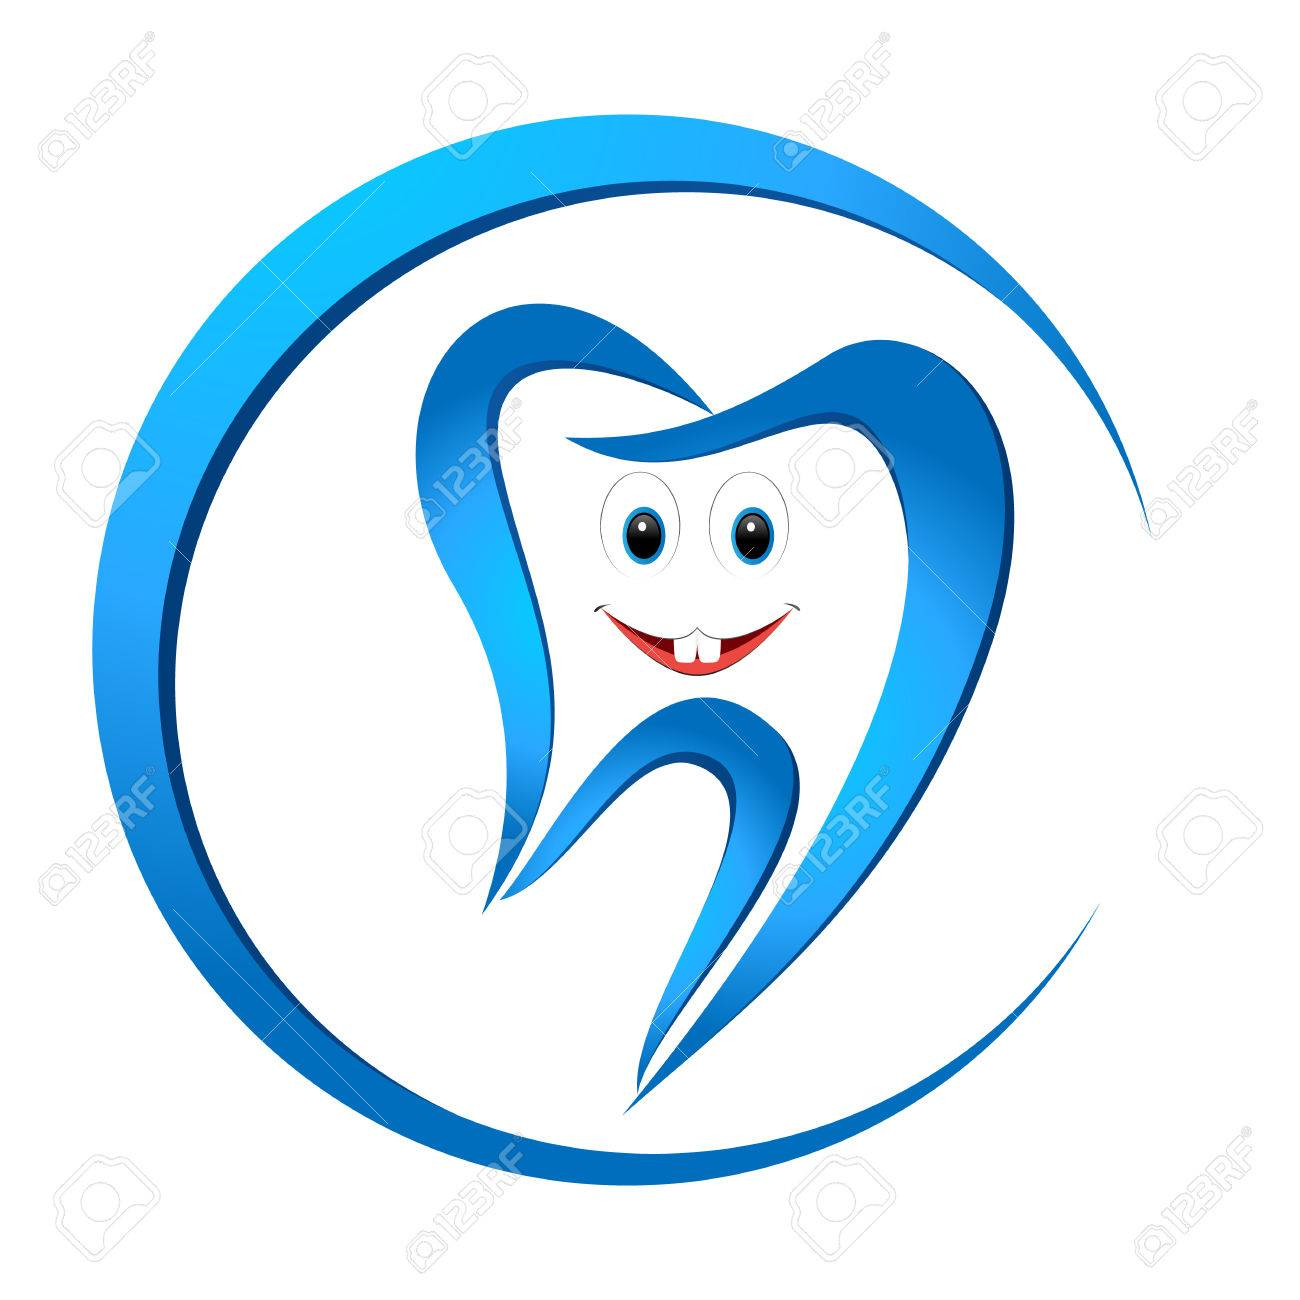 smiling tooth - 24622944